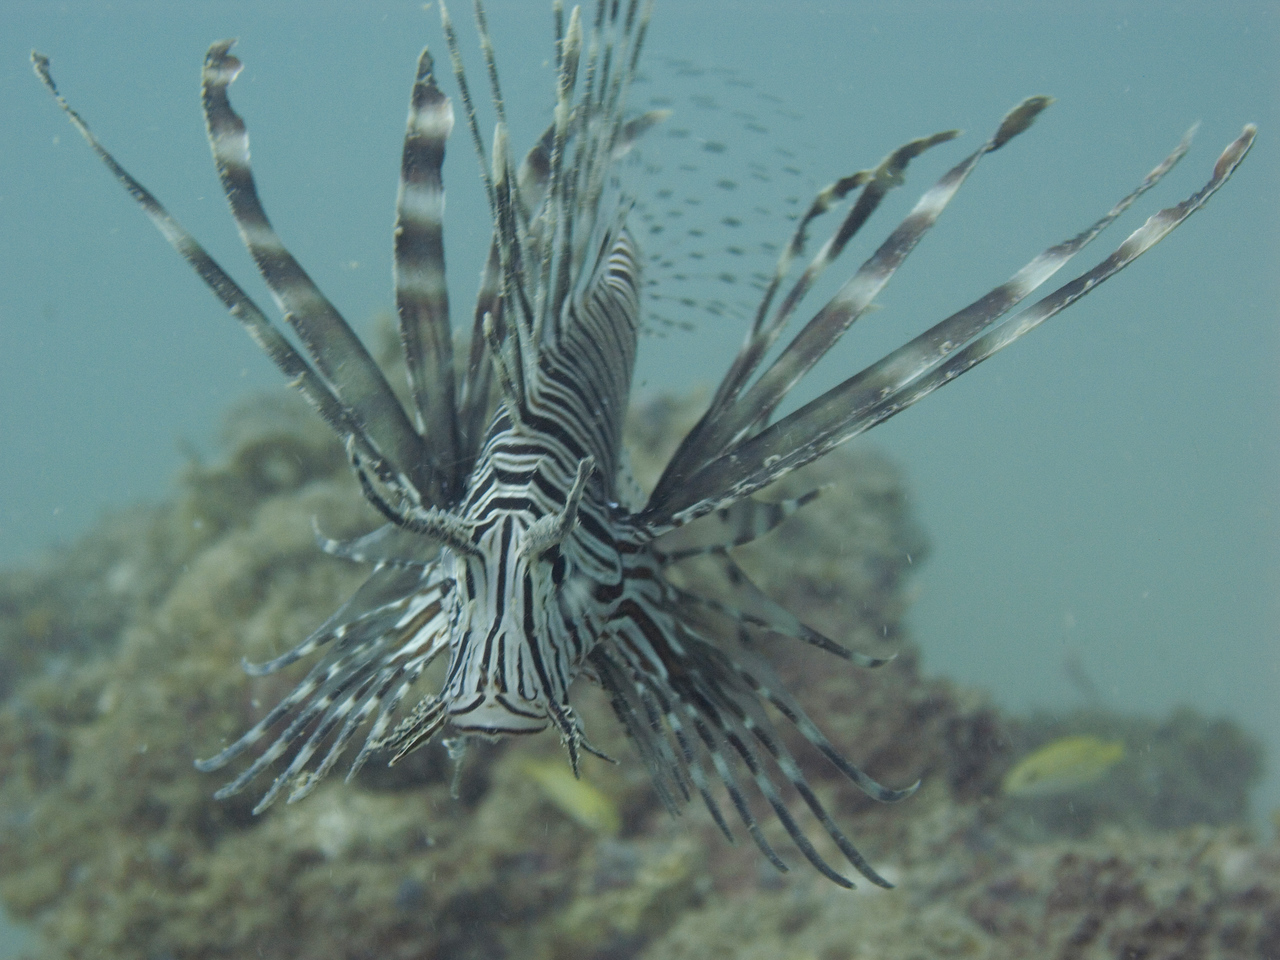 Another lionfish.